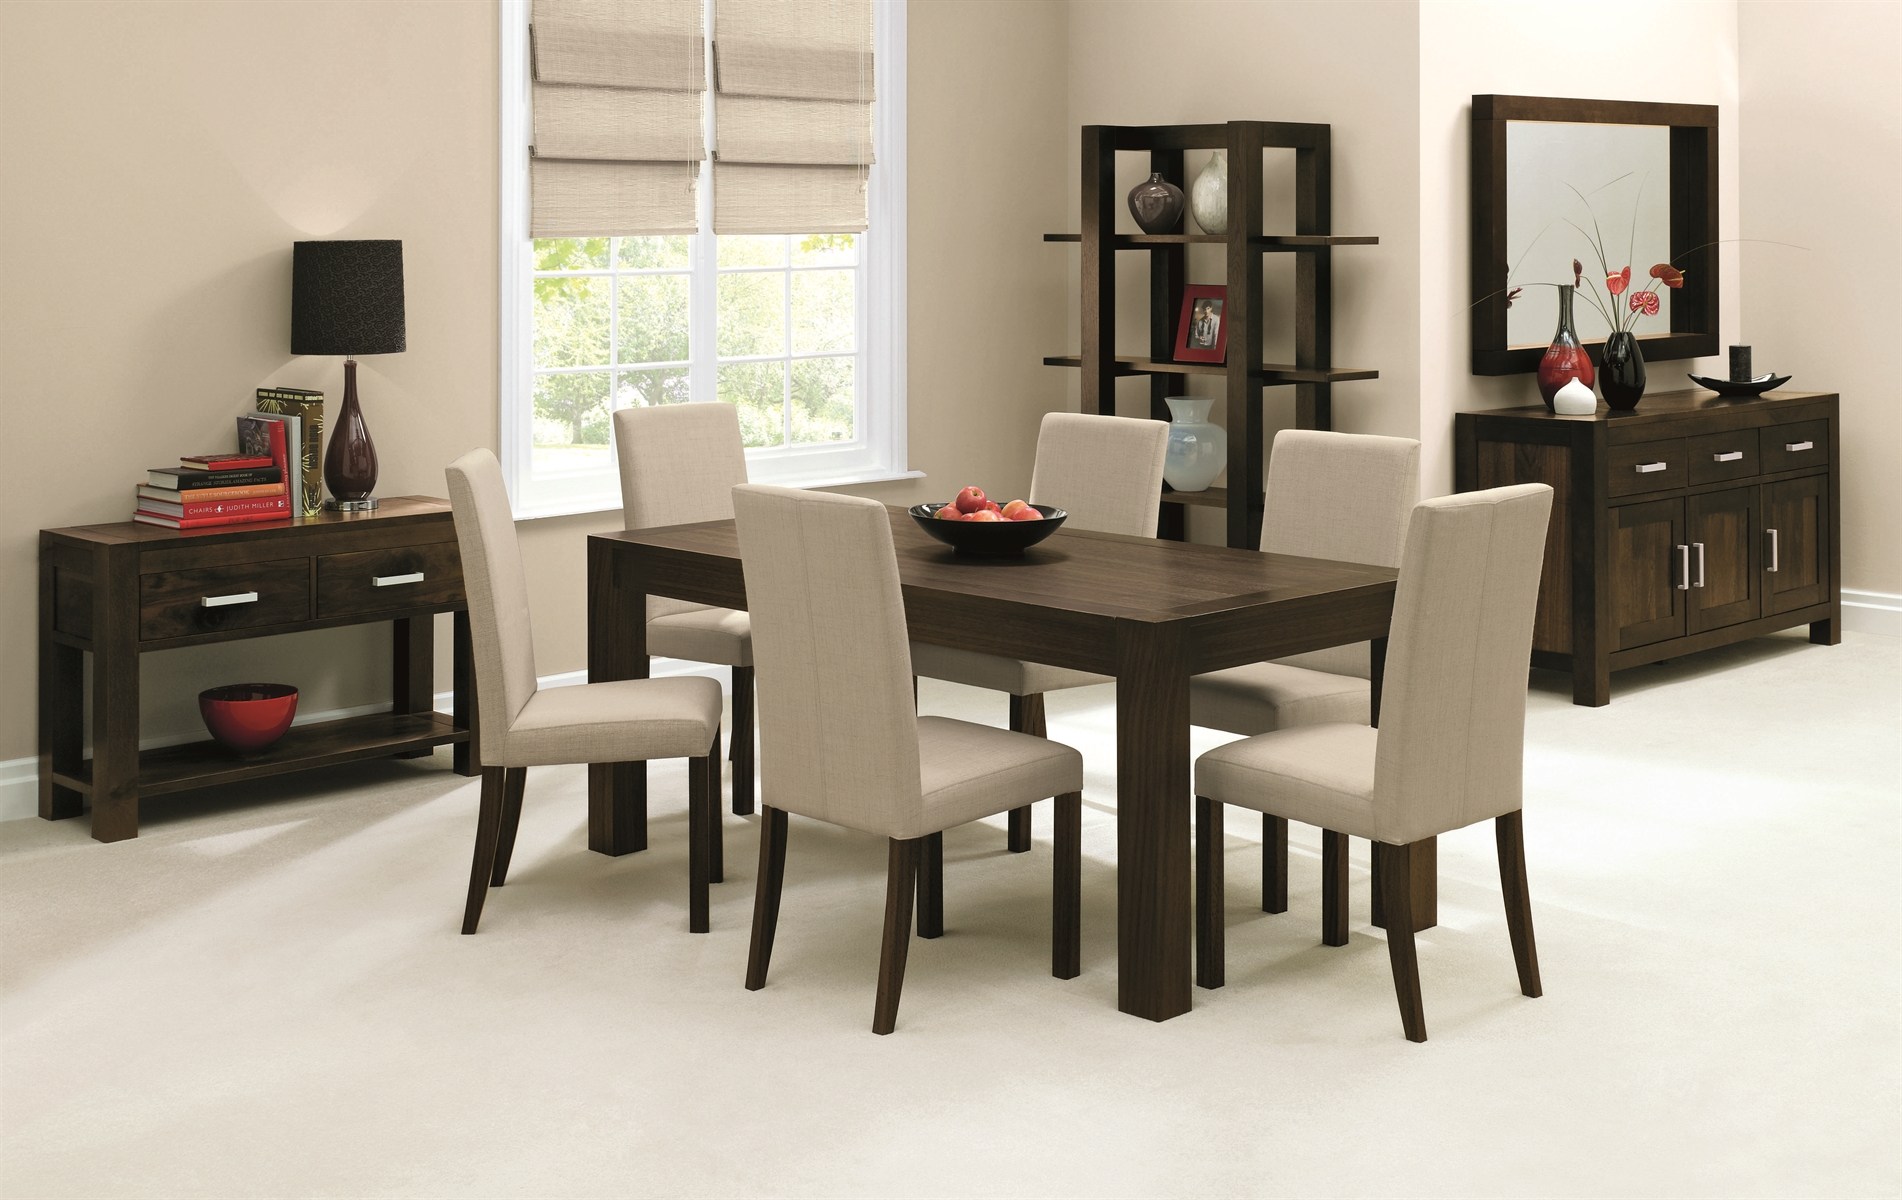 Lyon Walnut Bedroom Furniture Dining Room Furniture Furniture Store In Leicester World Of